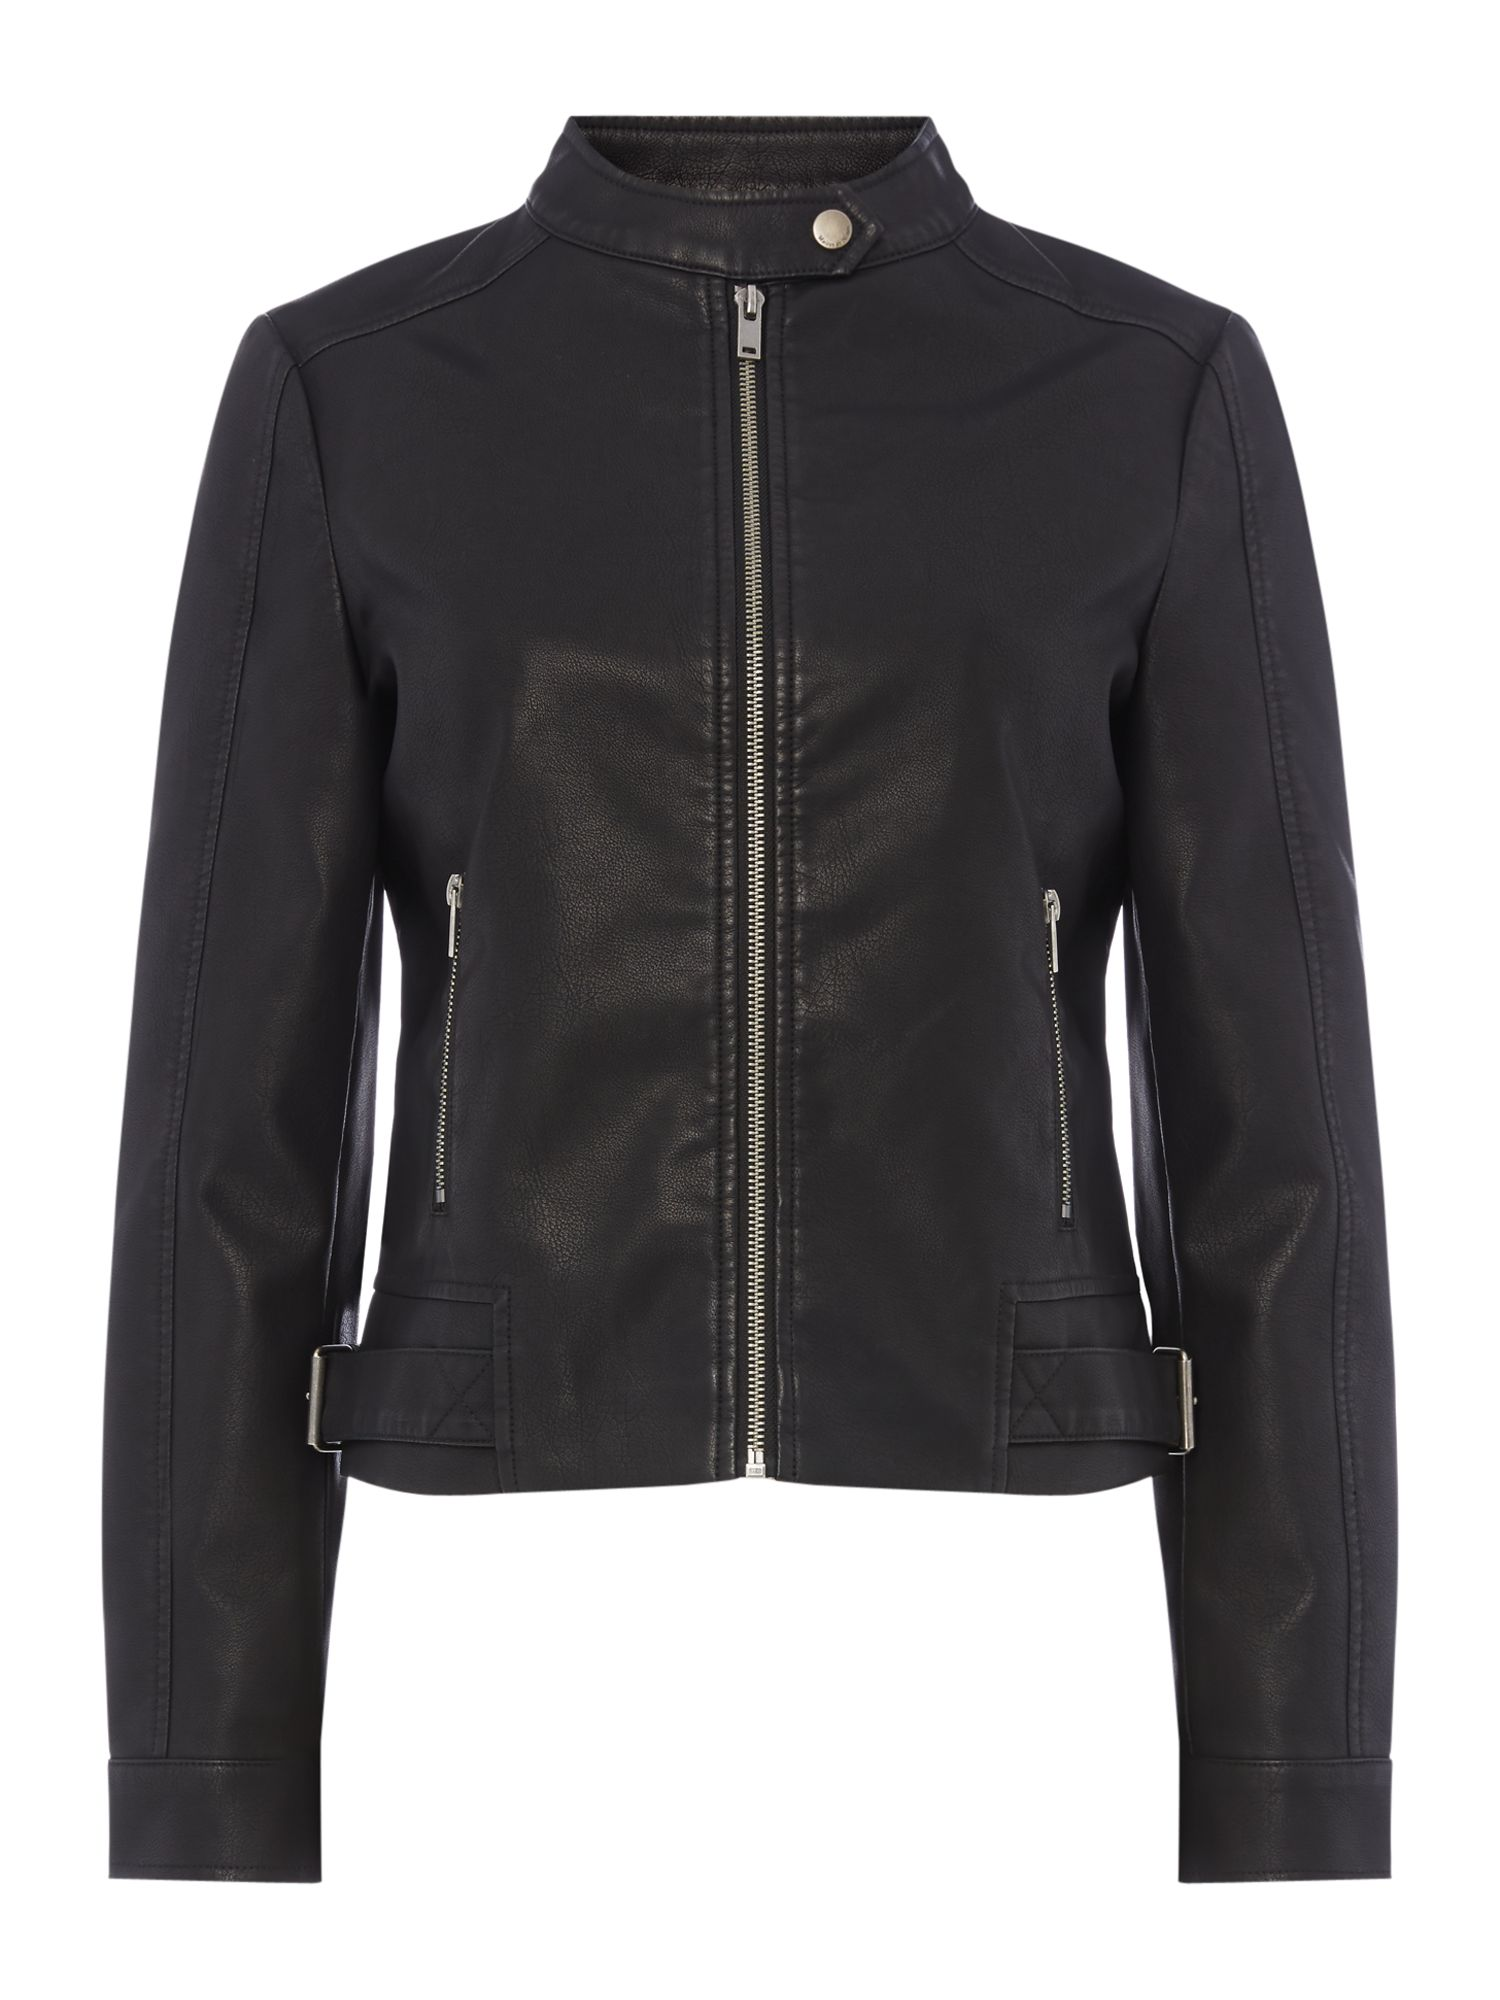 Maison De Nimes Faux Leather Motor Biker Jacket, Black